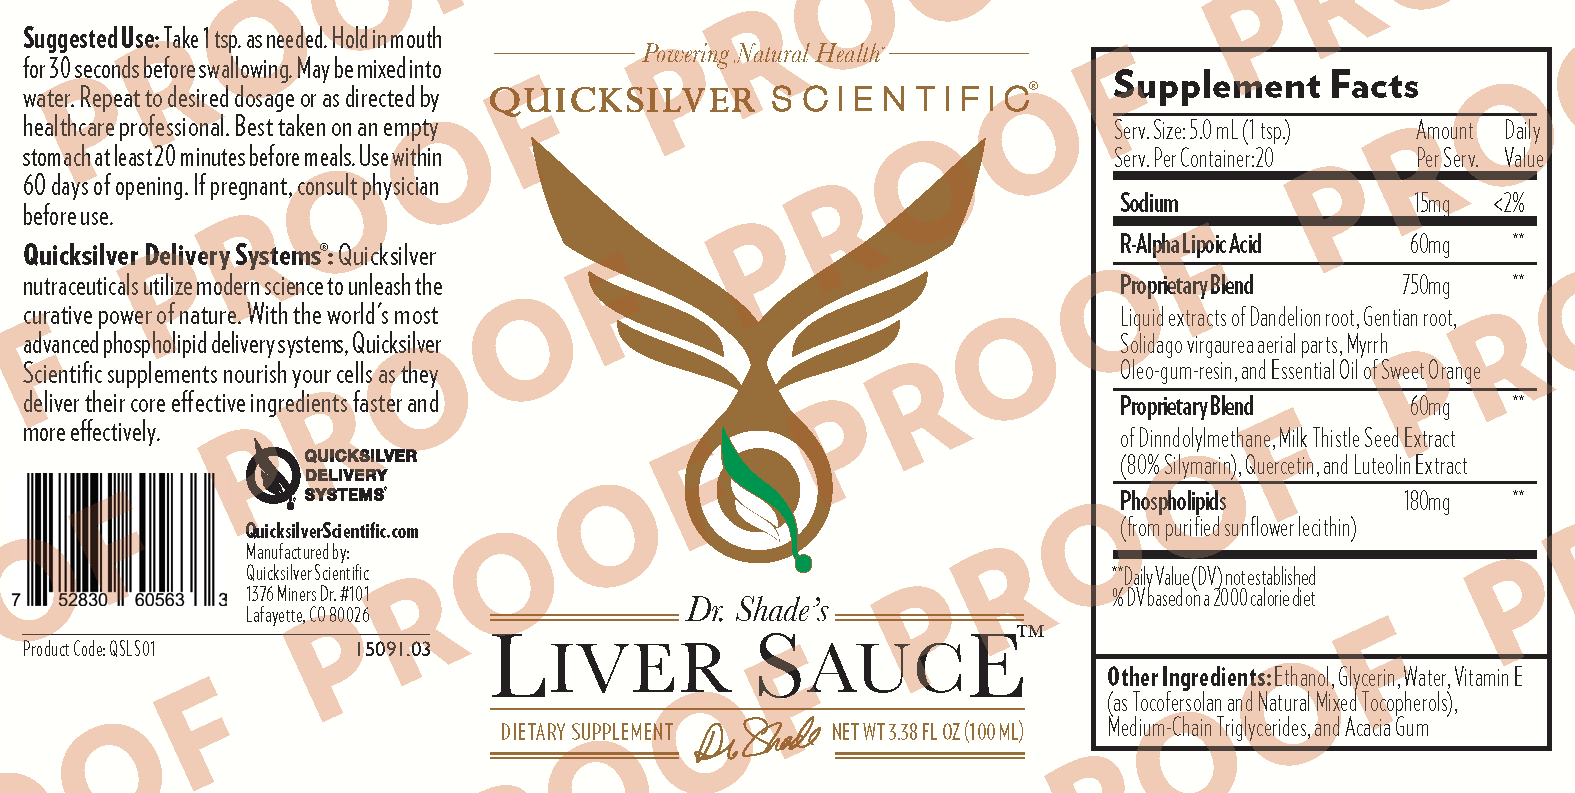 Liver Sauce 100ml Herbal Line 1509103 Chickweed Extract 1oz/4oz